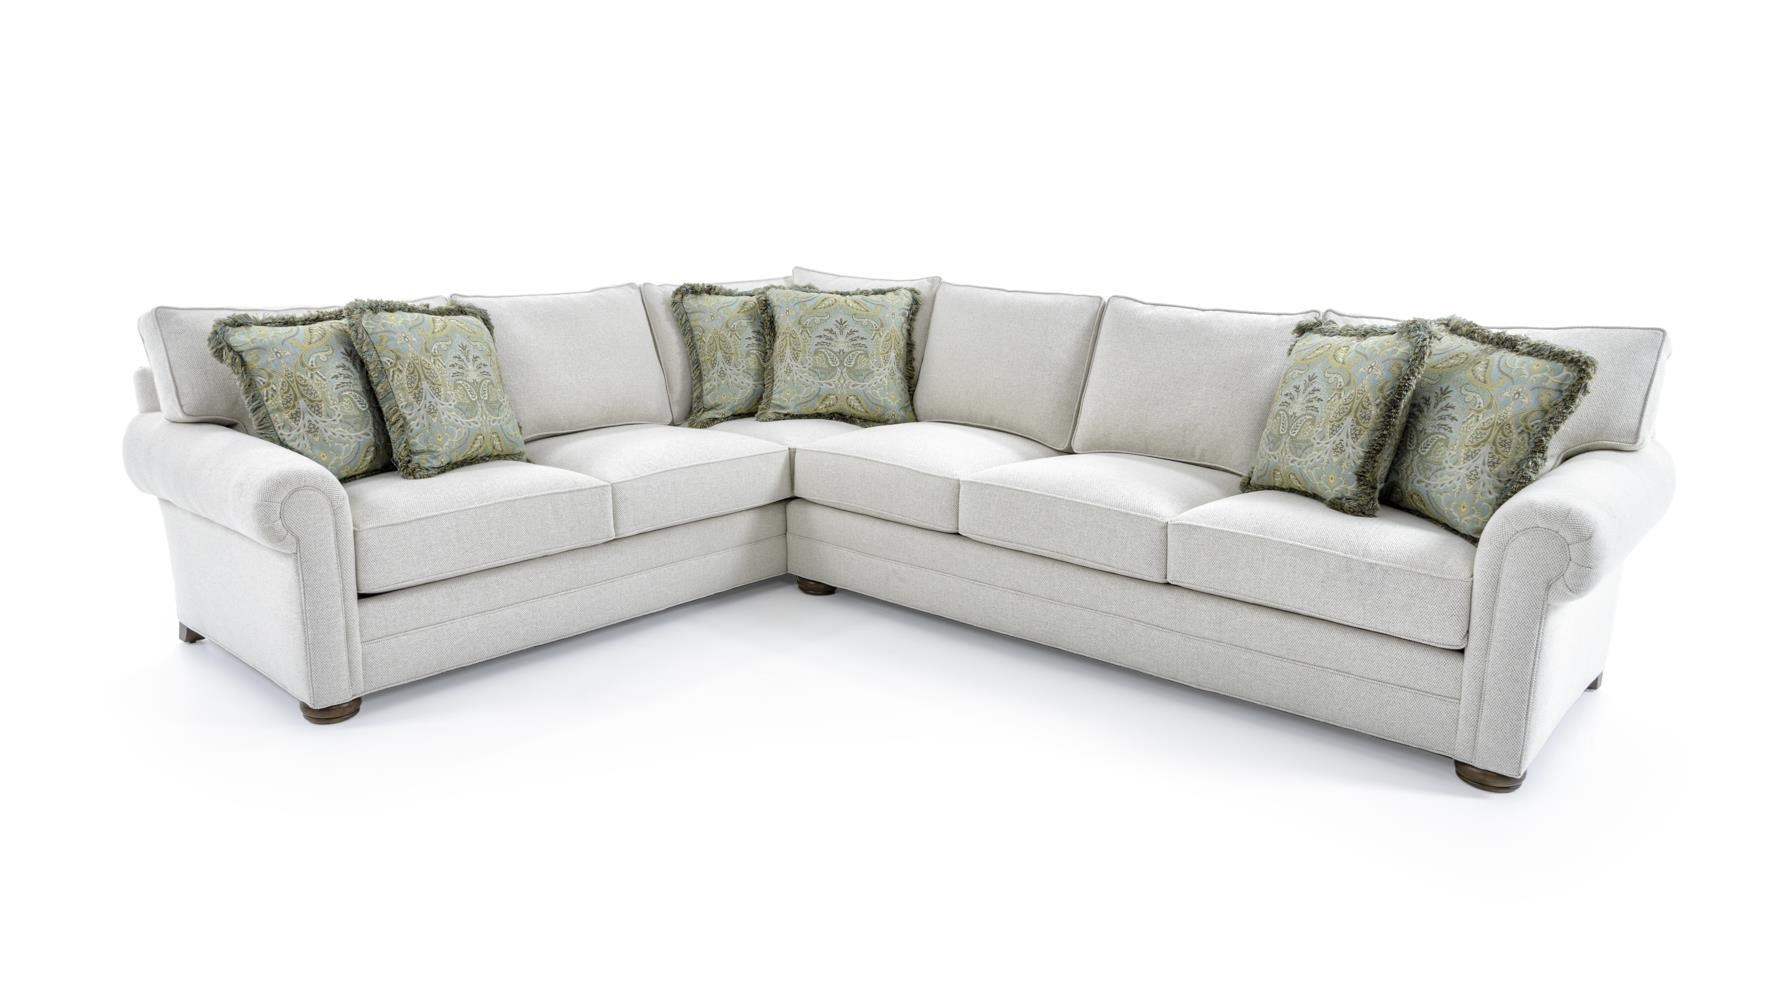 Customizable Sectional Sofa with Lawson Arms and Bun Feet